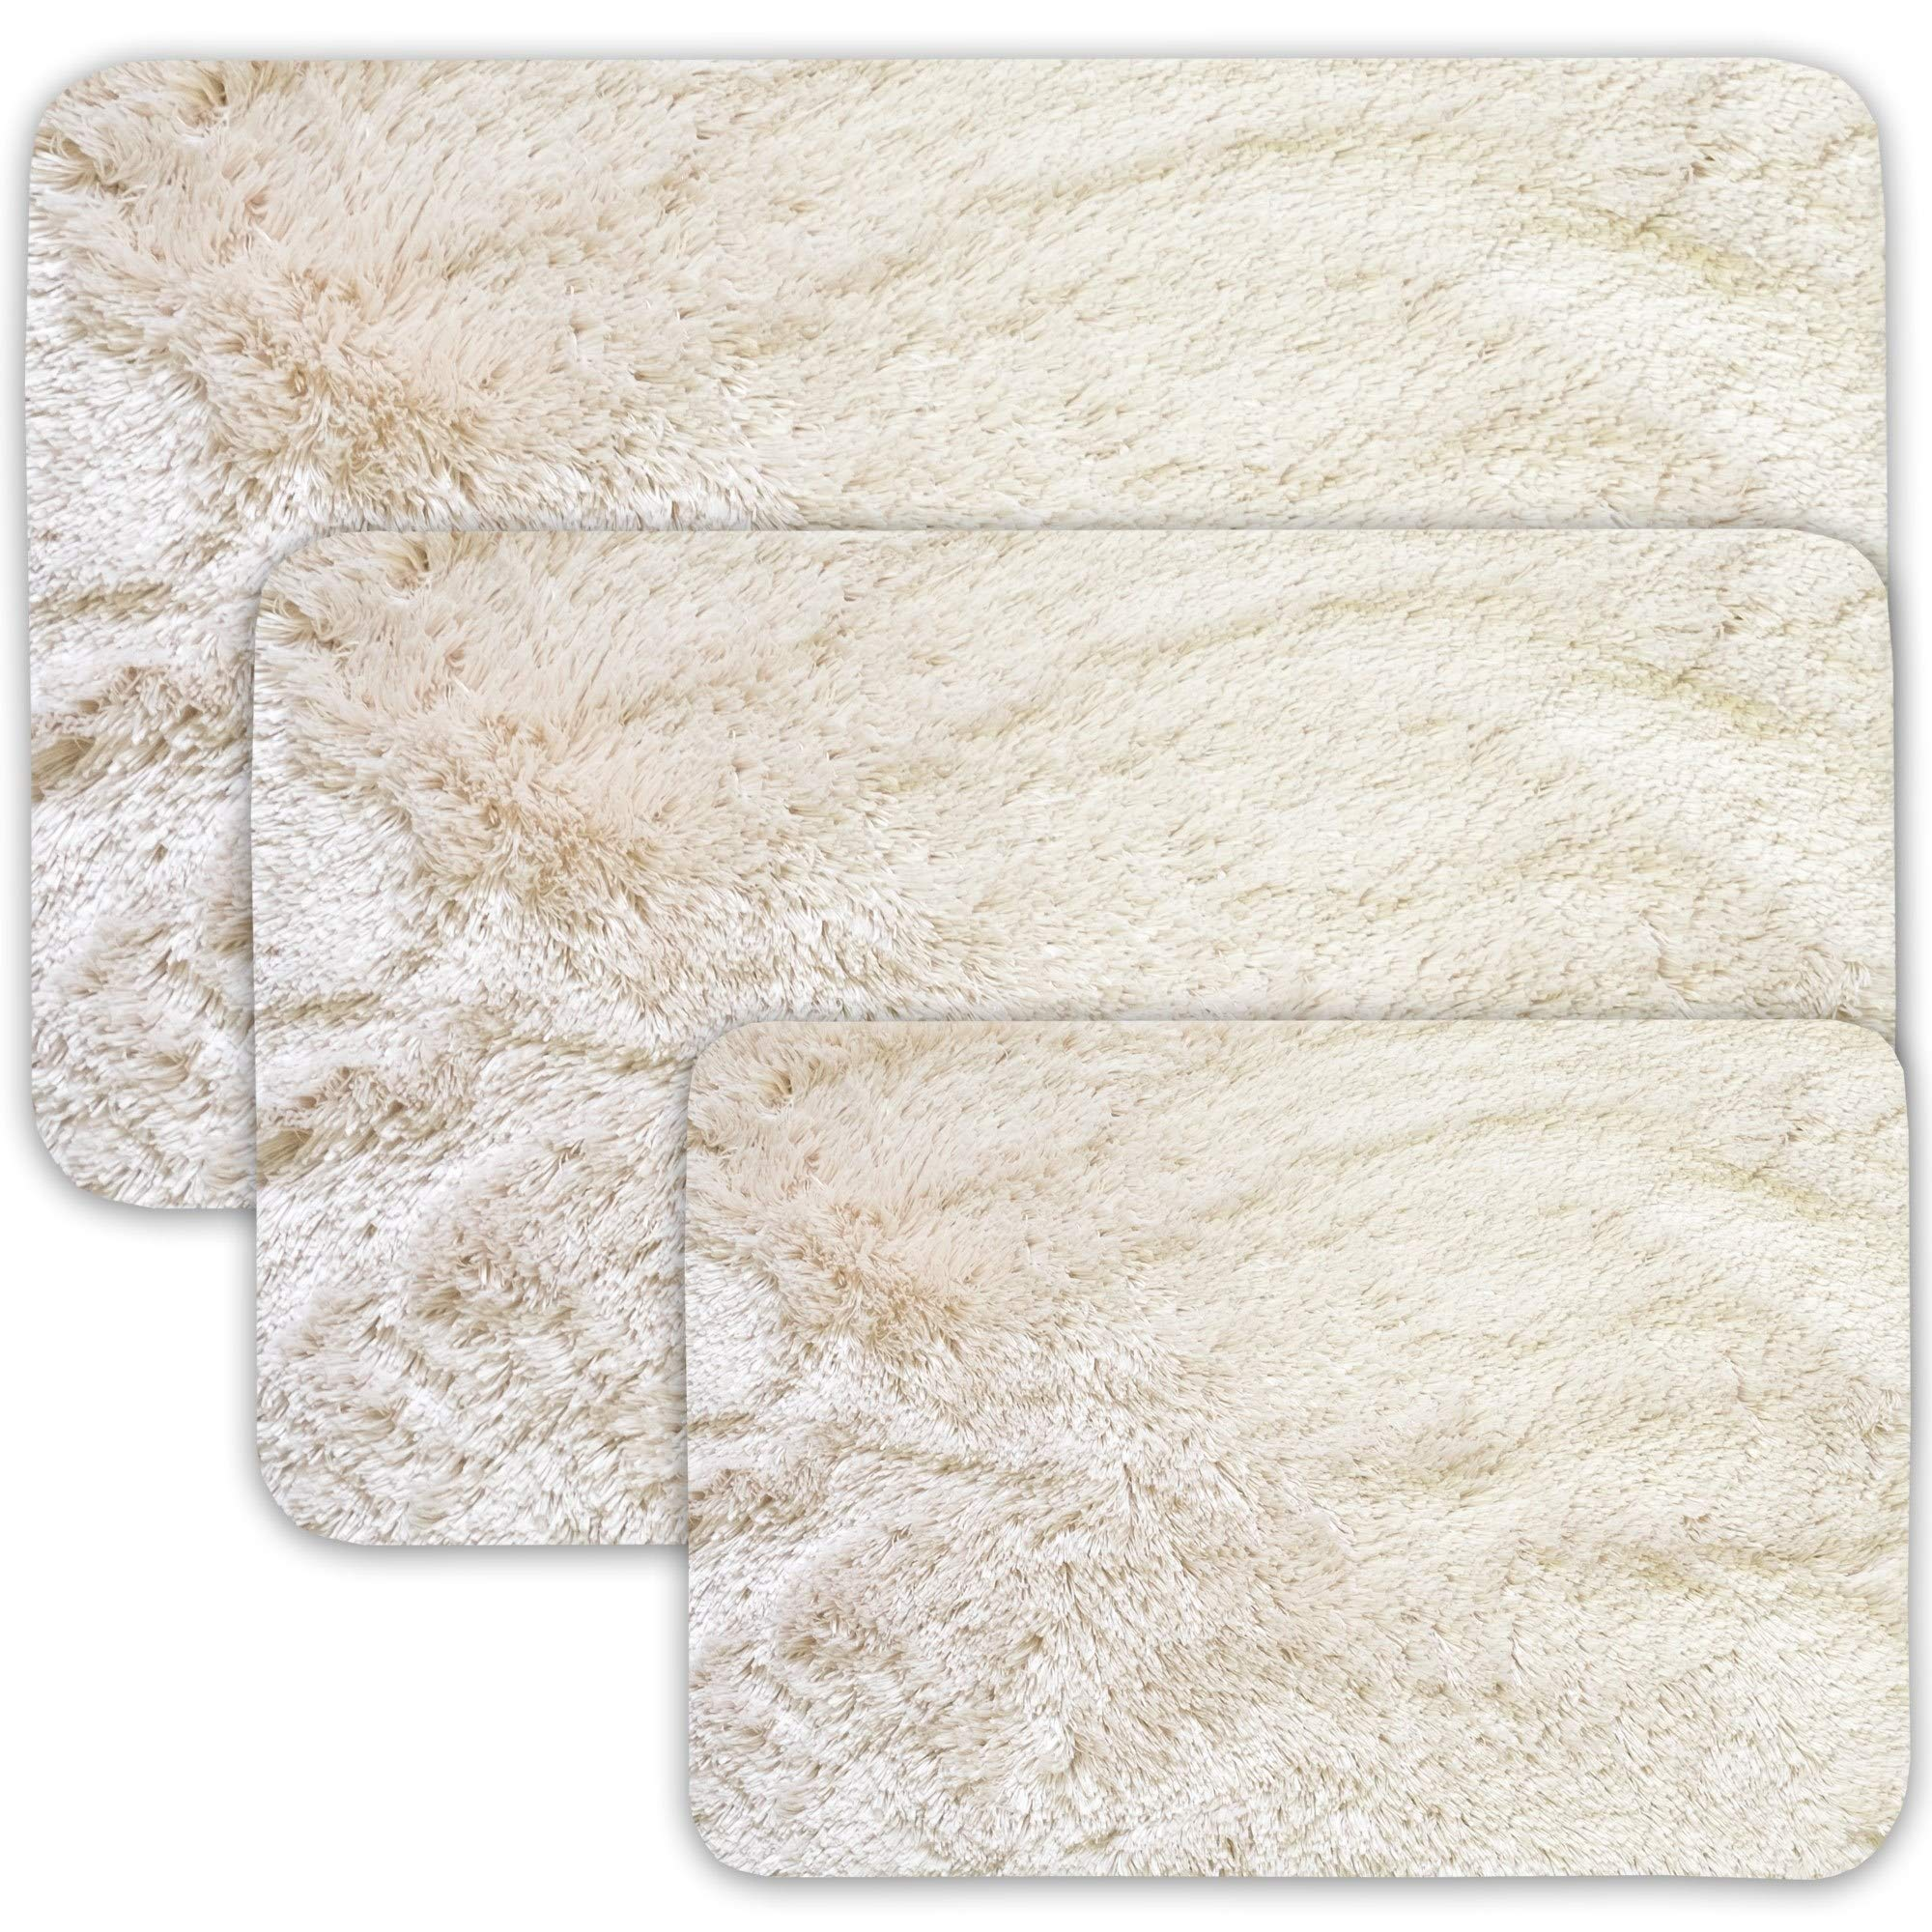 3 Piece White Shag Bath Rug Set Solid Color Fauxfur Shaggy Chenille Bath Rug Mat Super Soft Cozy Bathtub Mat Floor Carpet Master Guest Bathroom Decor Water Absorbent Nonslip, Polyester Microfiber